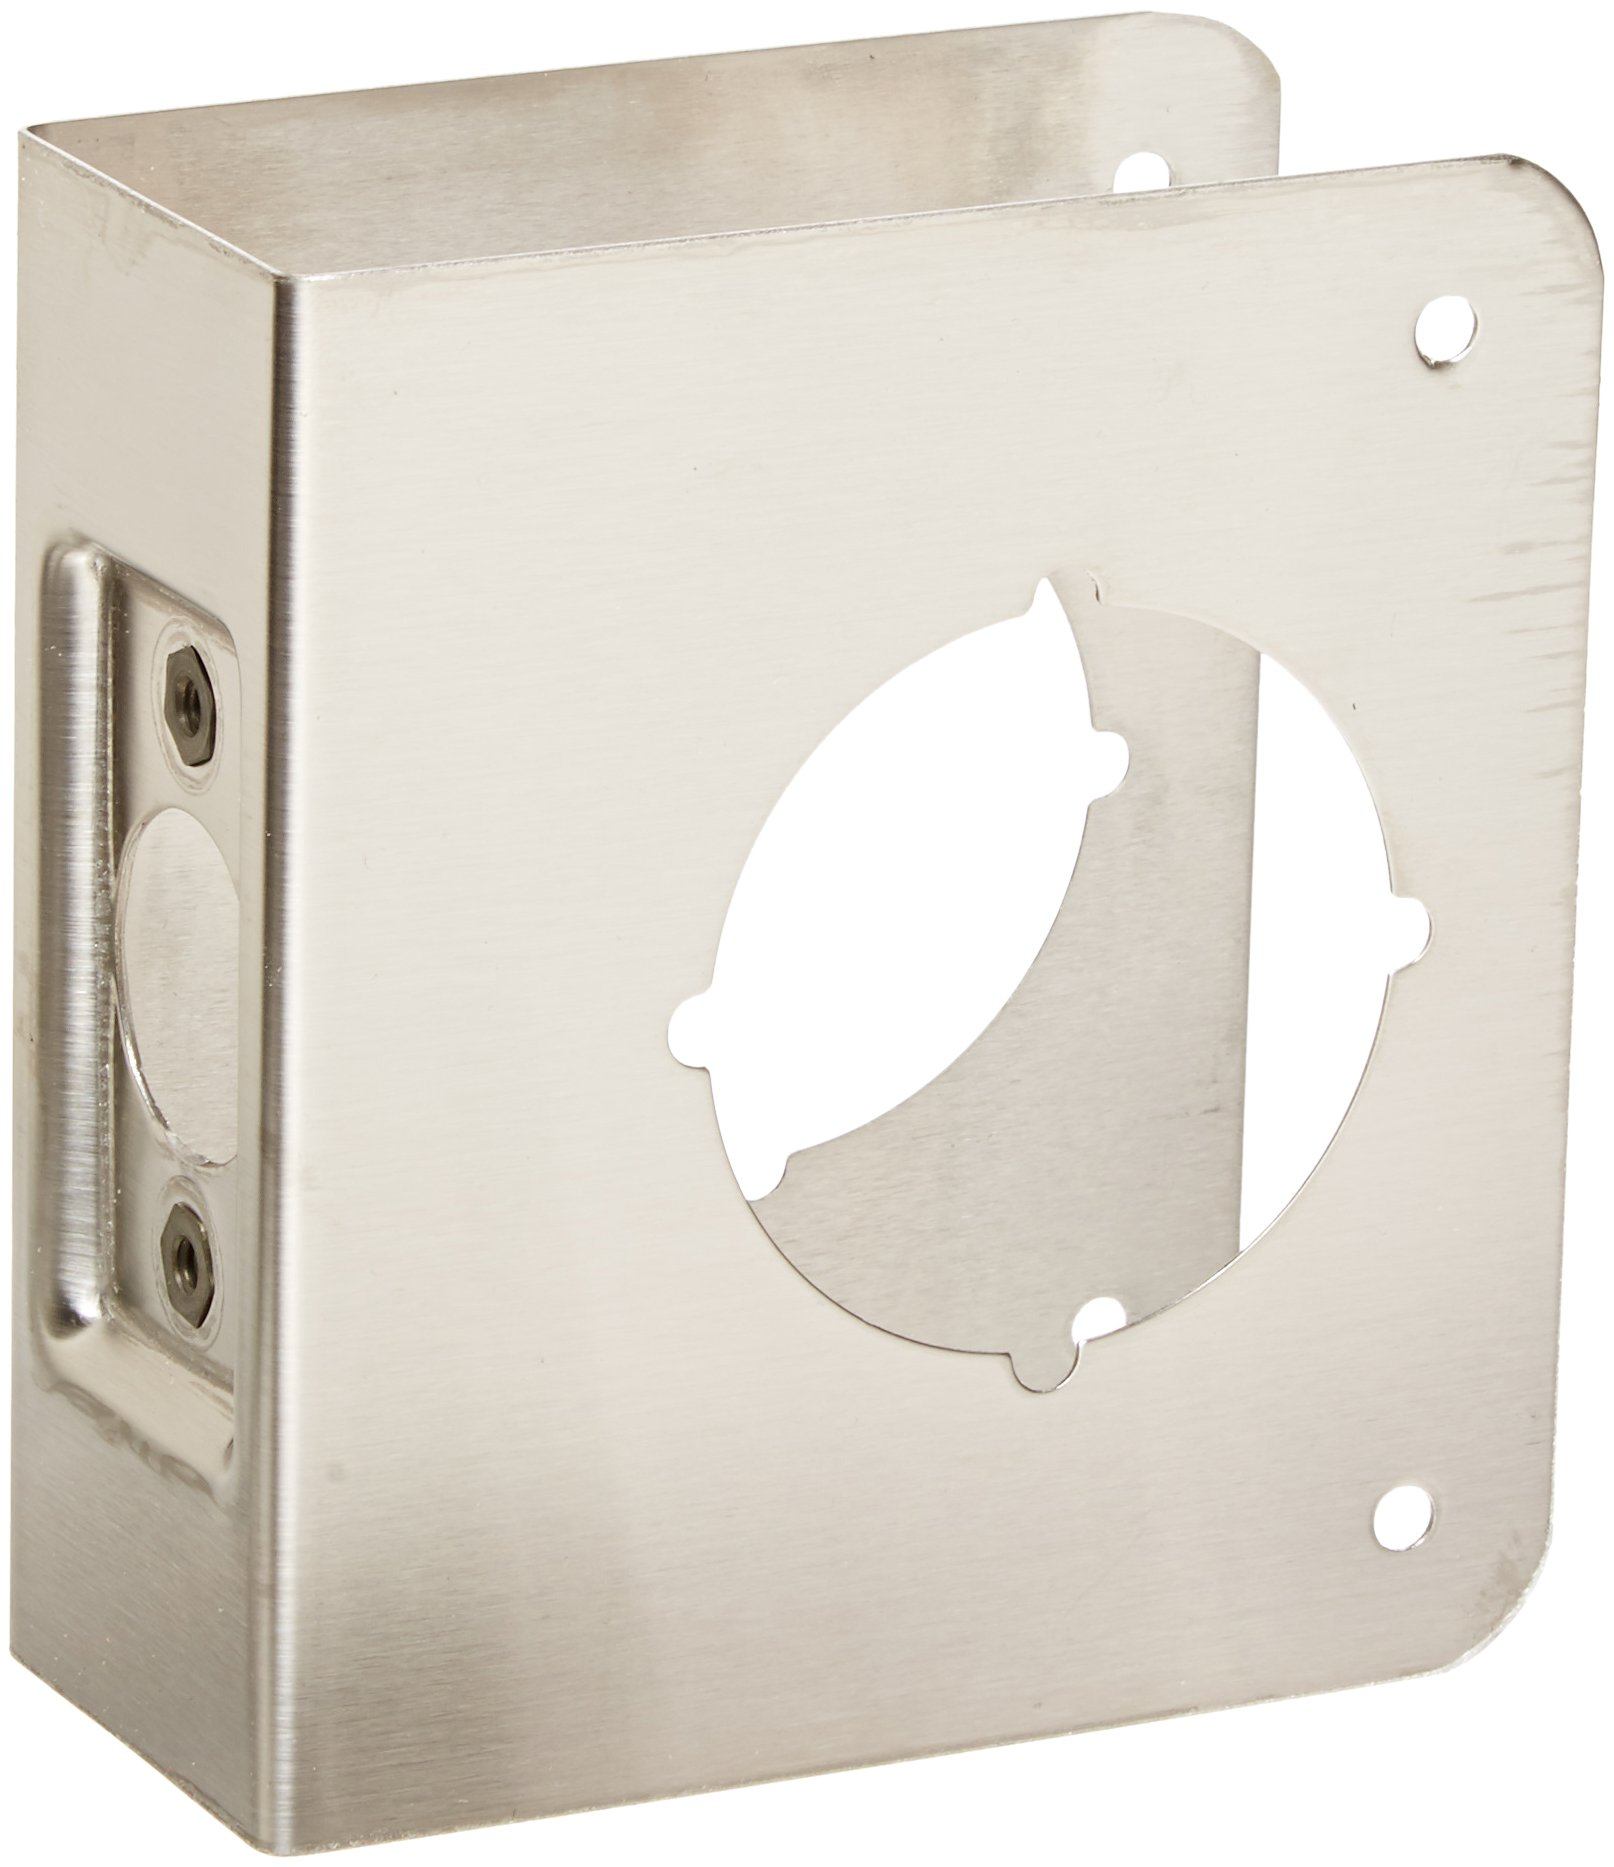 Don-Jo 61-CW 22 Gauge Stainless Steel Classic Wrap-Around Plate, Satin Stainless Steel Finish, 4'' Width x 4-1/2'' Height, For Cylindrical Door Lock (Pack of 10)